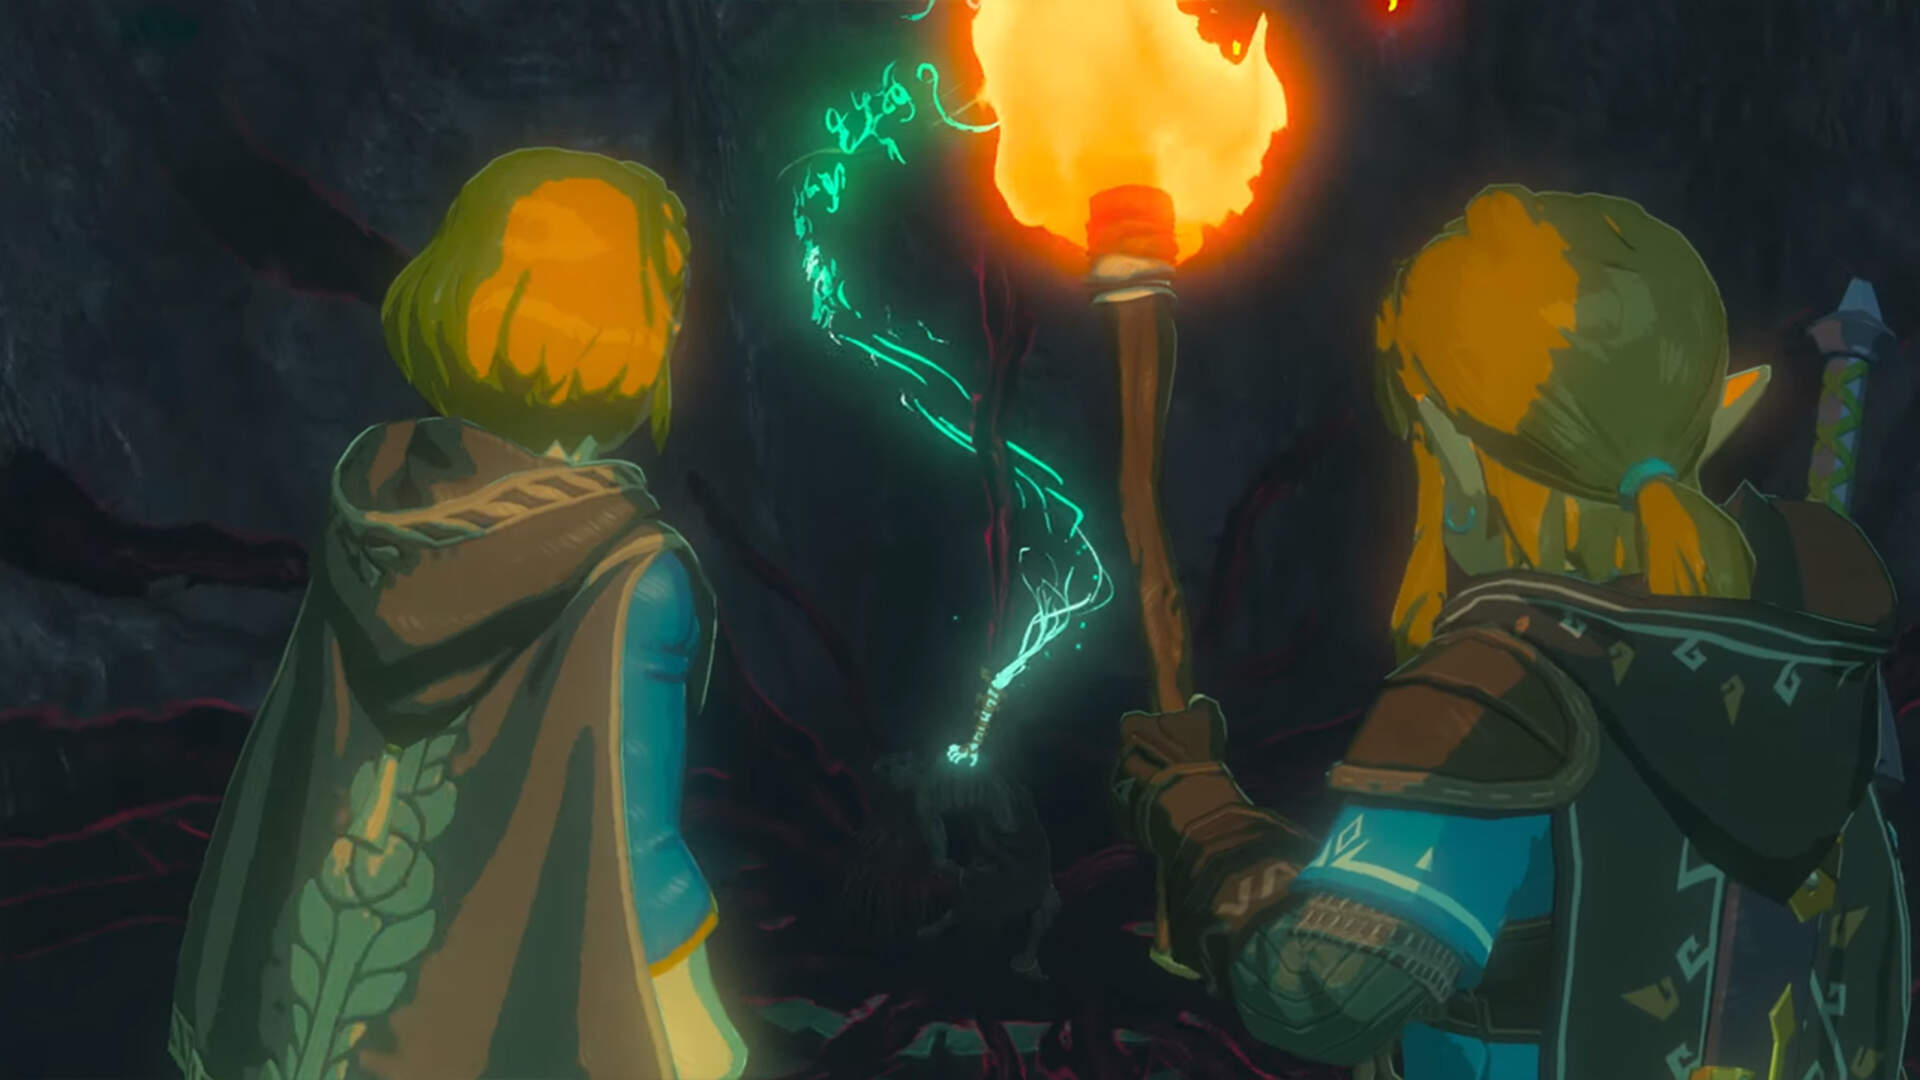 Nintendo Direct E3 2019 Recap: Breath of the Wild 2 Megaton Blows Everything Else Away